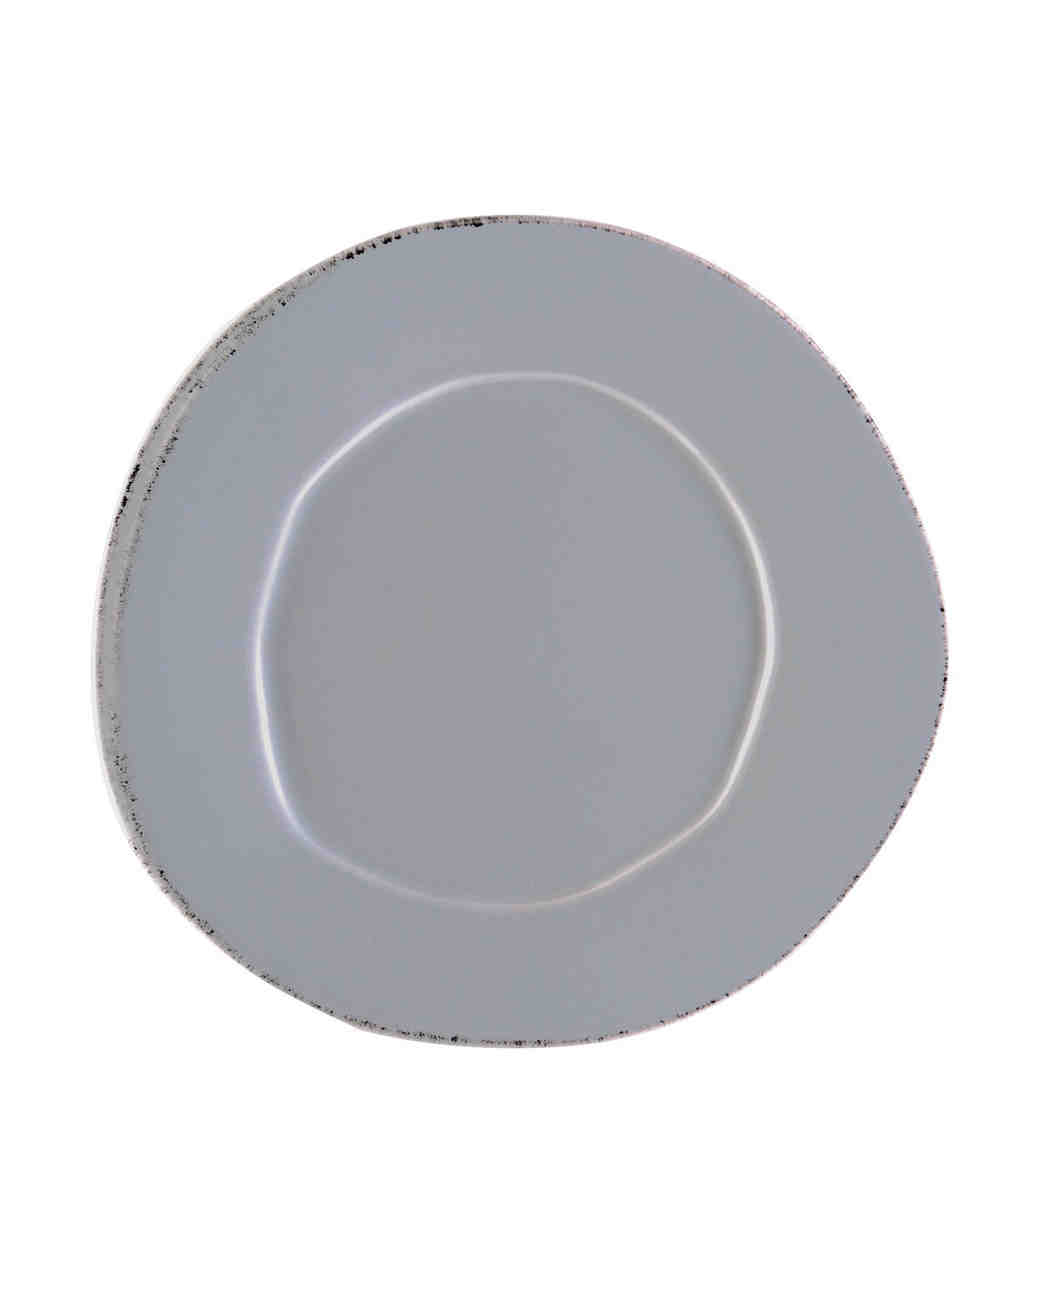 china-registry-essentials-vietri-lastra-dinner-plate-1014.jpg